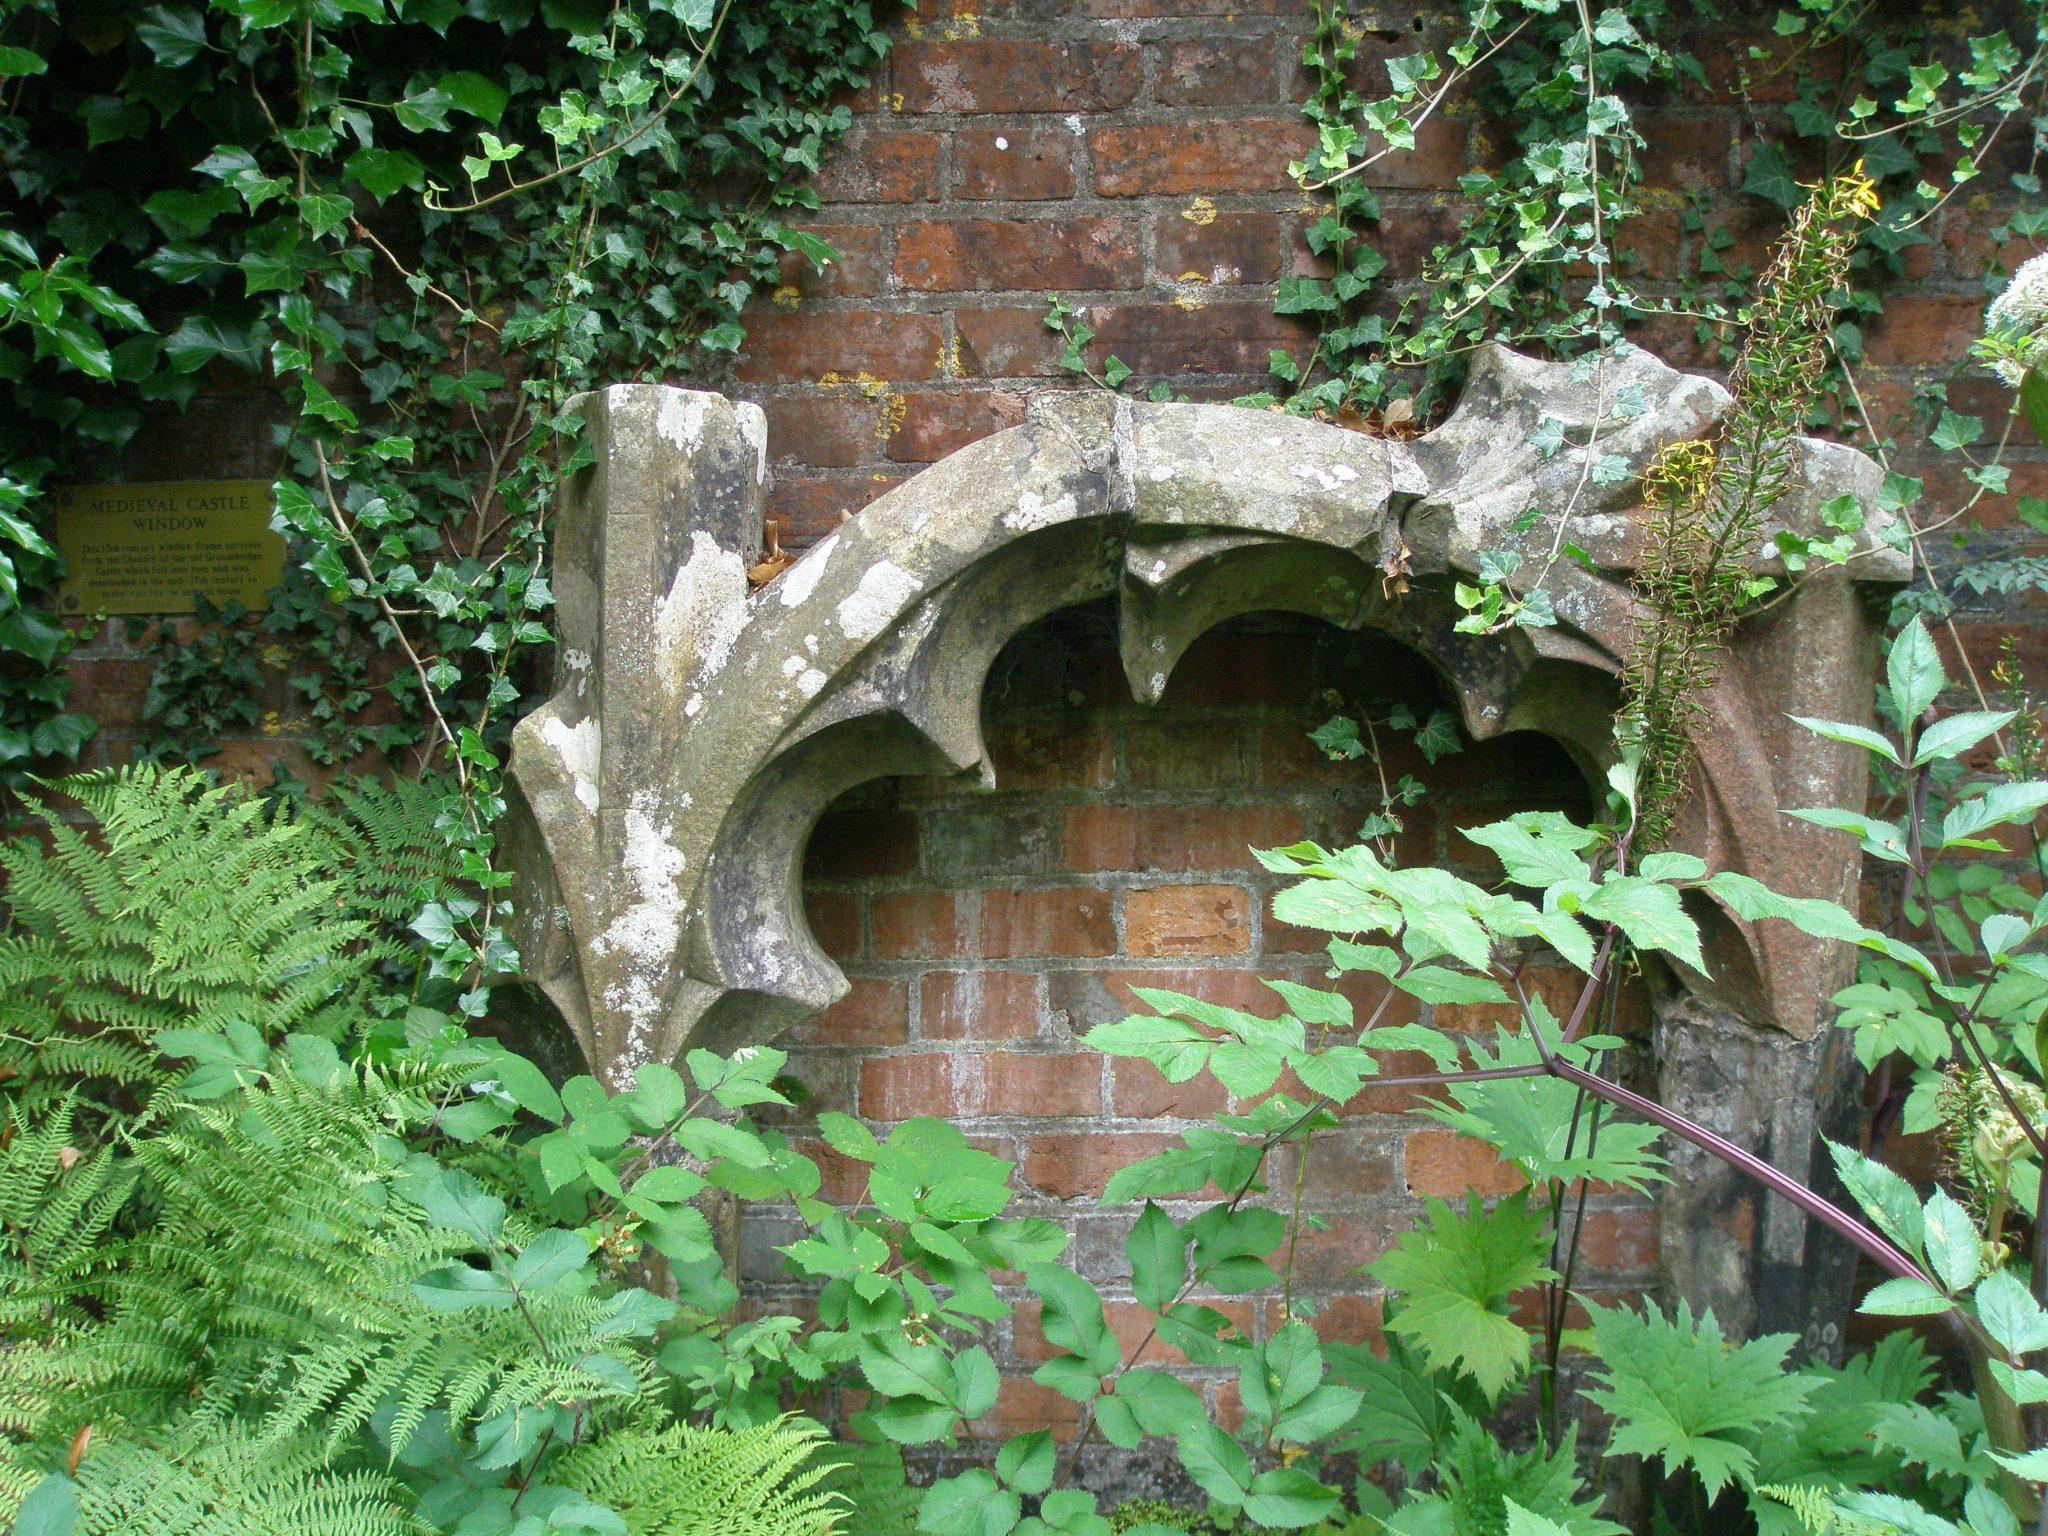 Wall detail in the Secret Garden